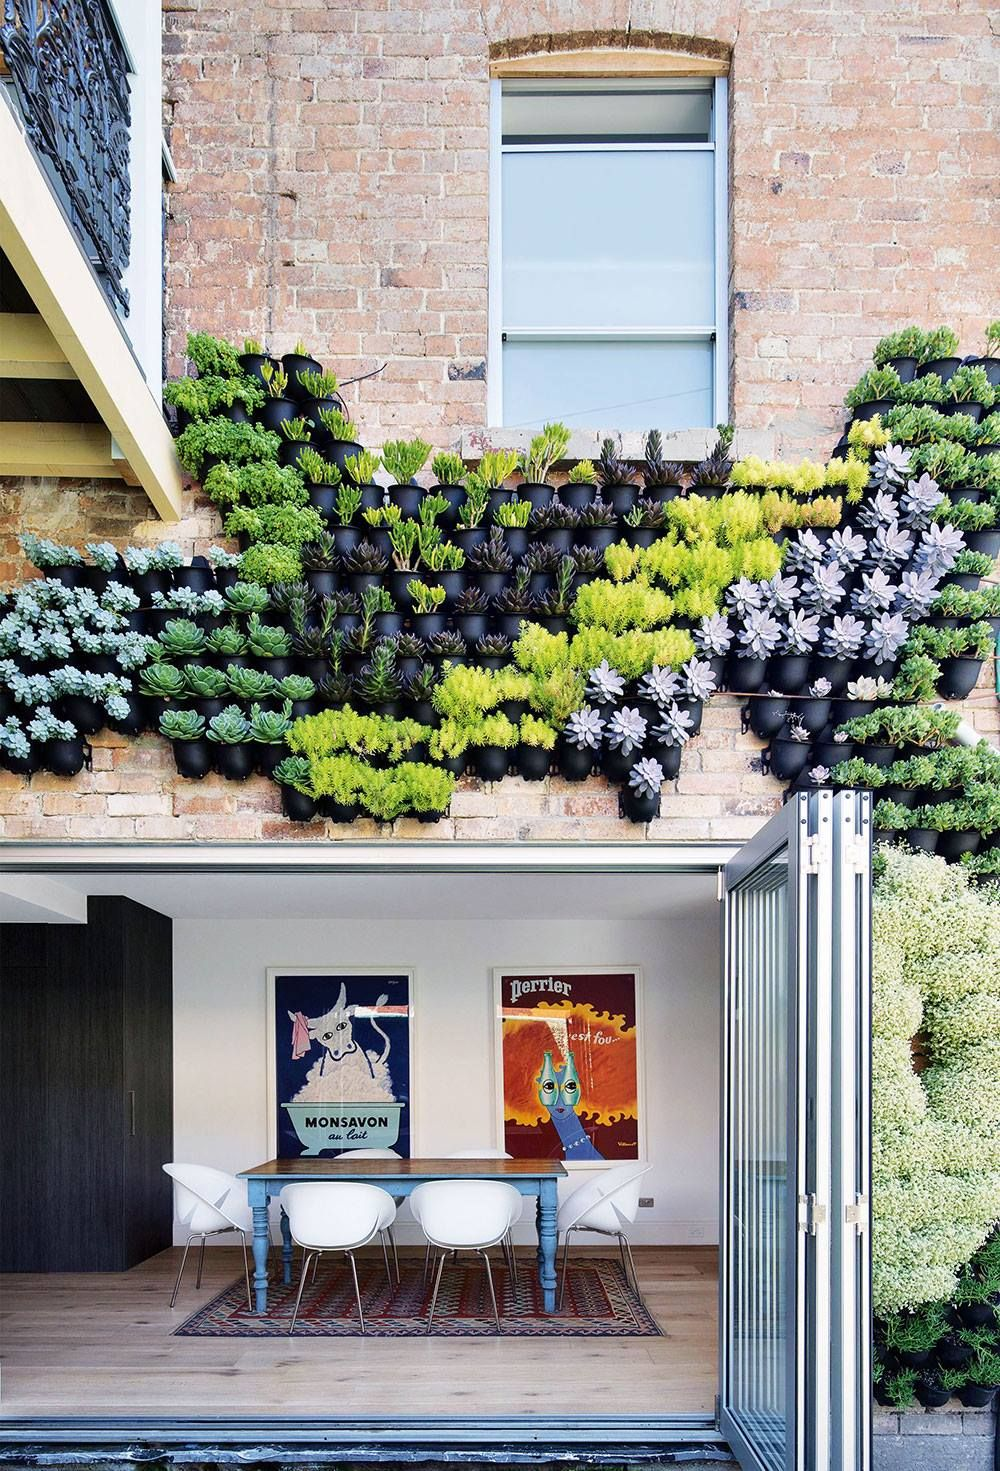 How amazing are these vertical gardens for efficient use of greenery